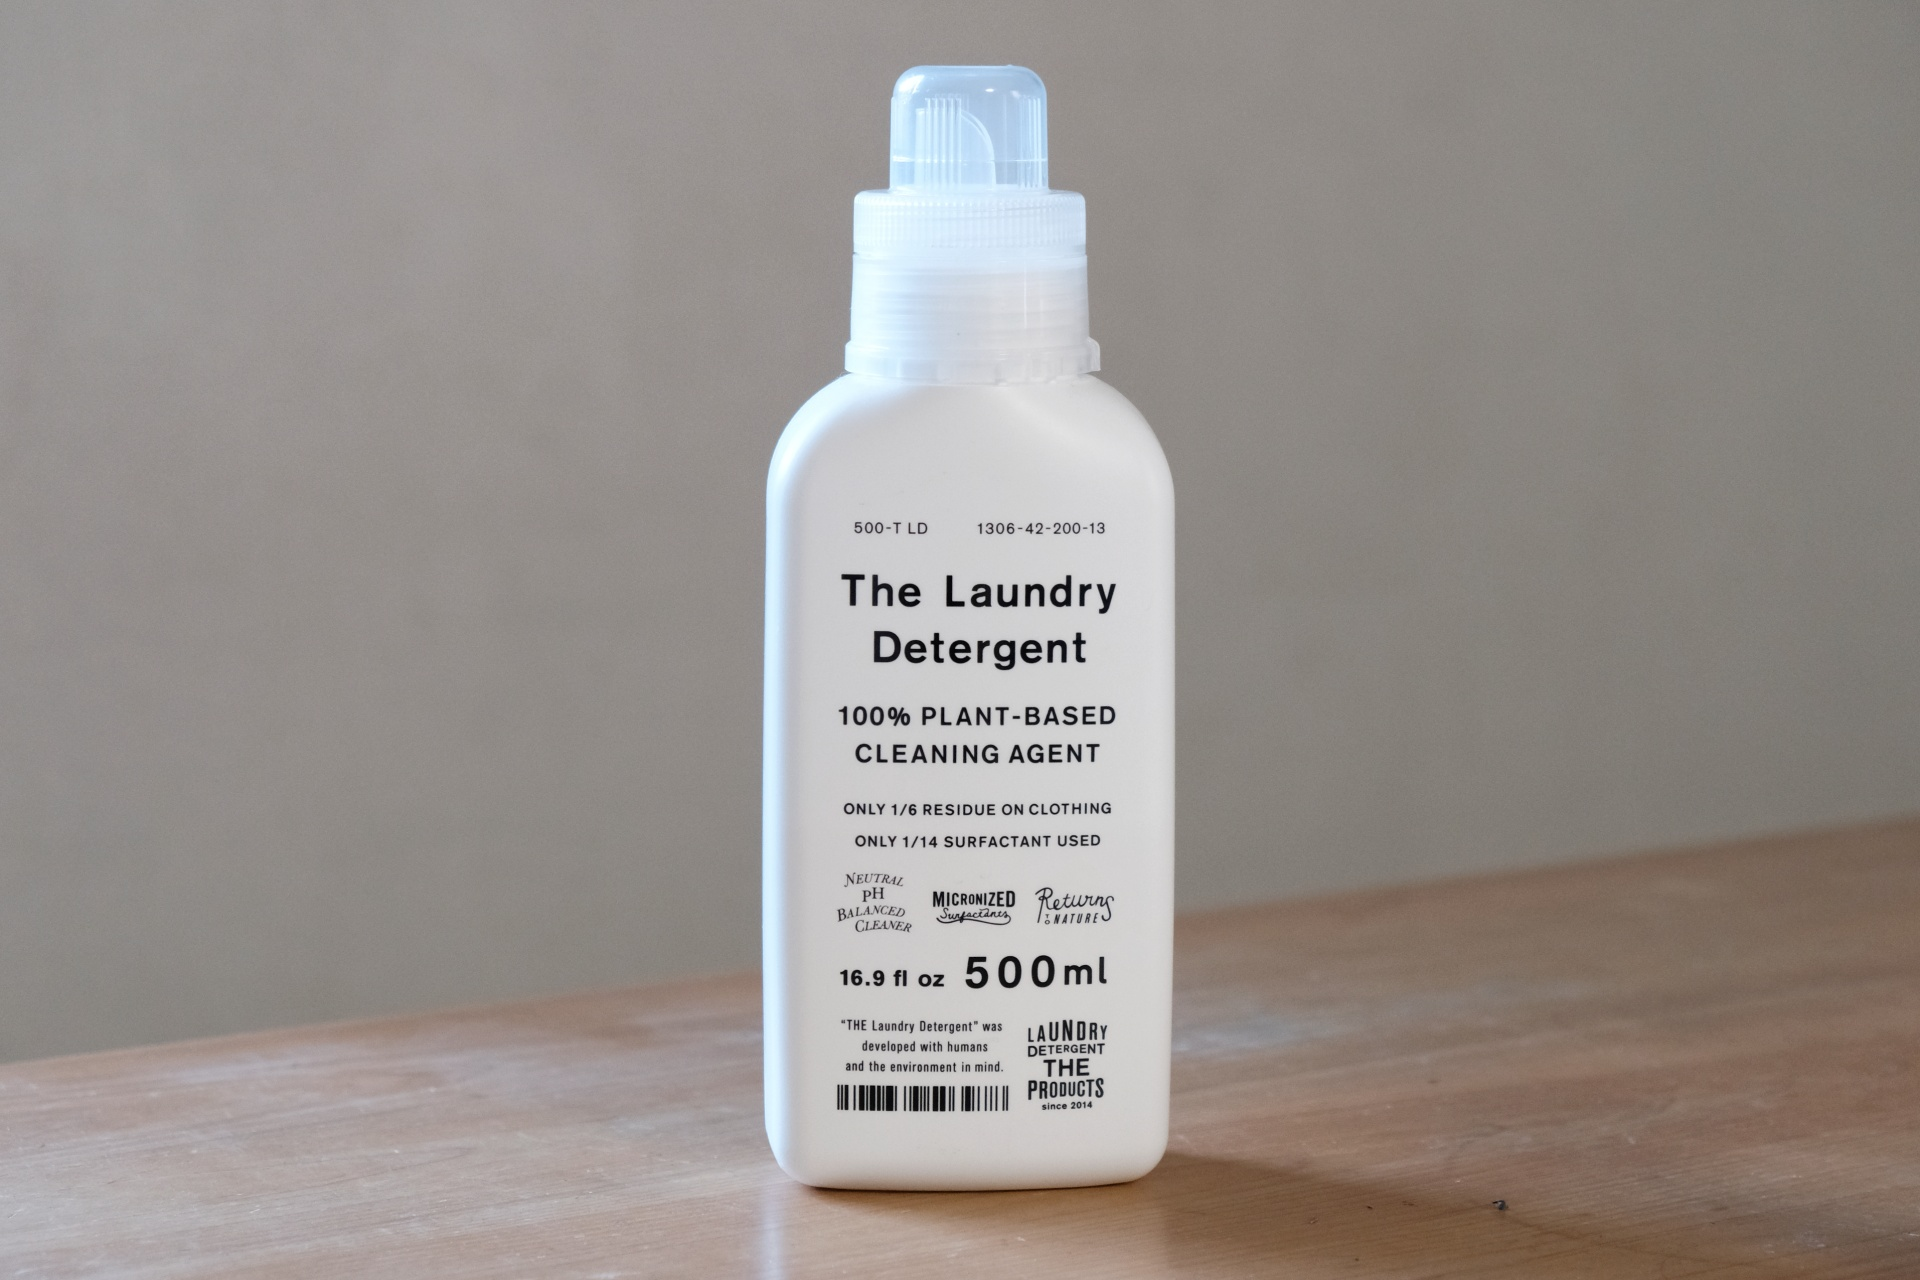 The Laundry Detergent